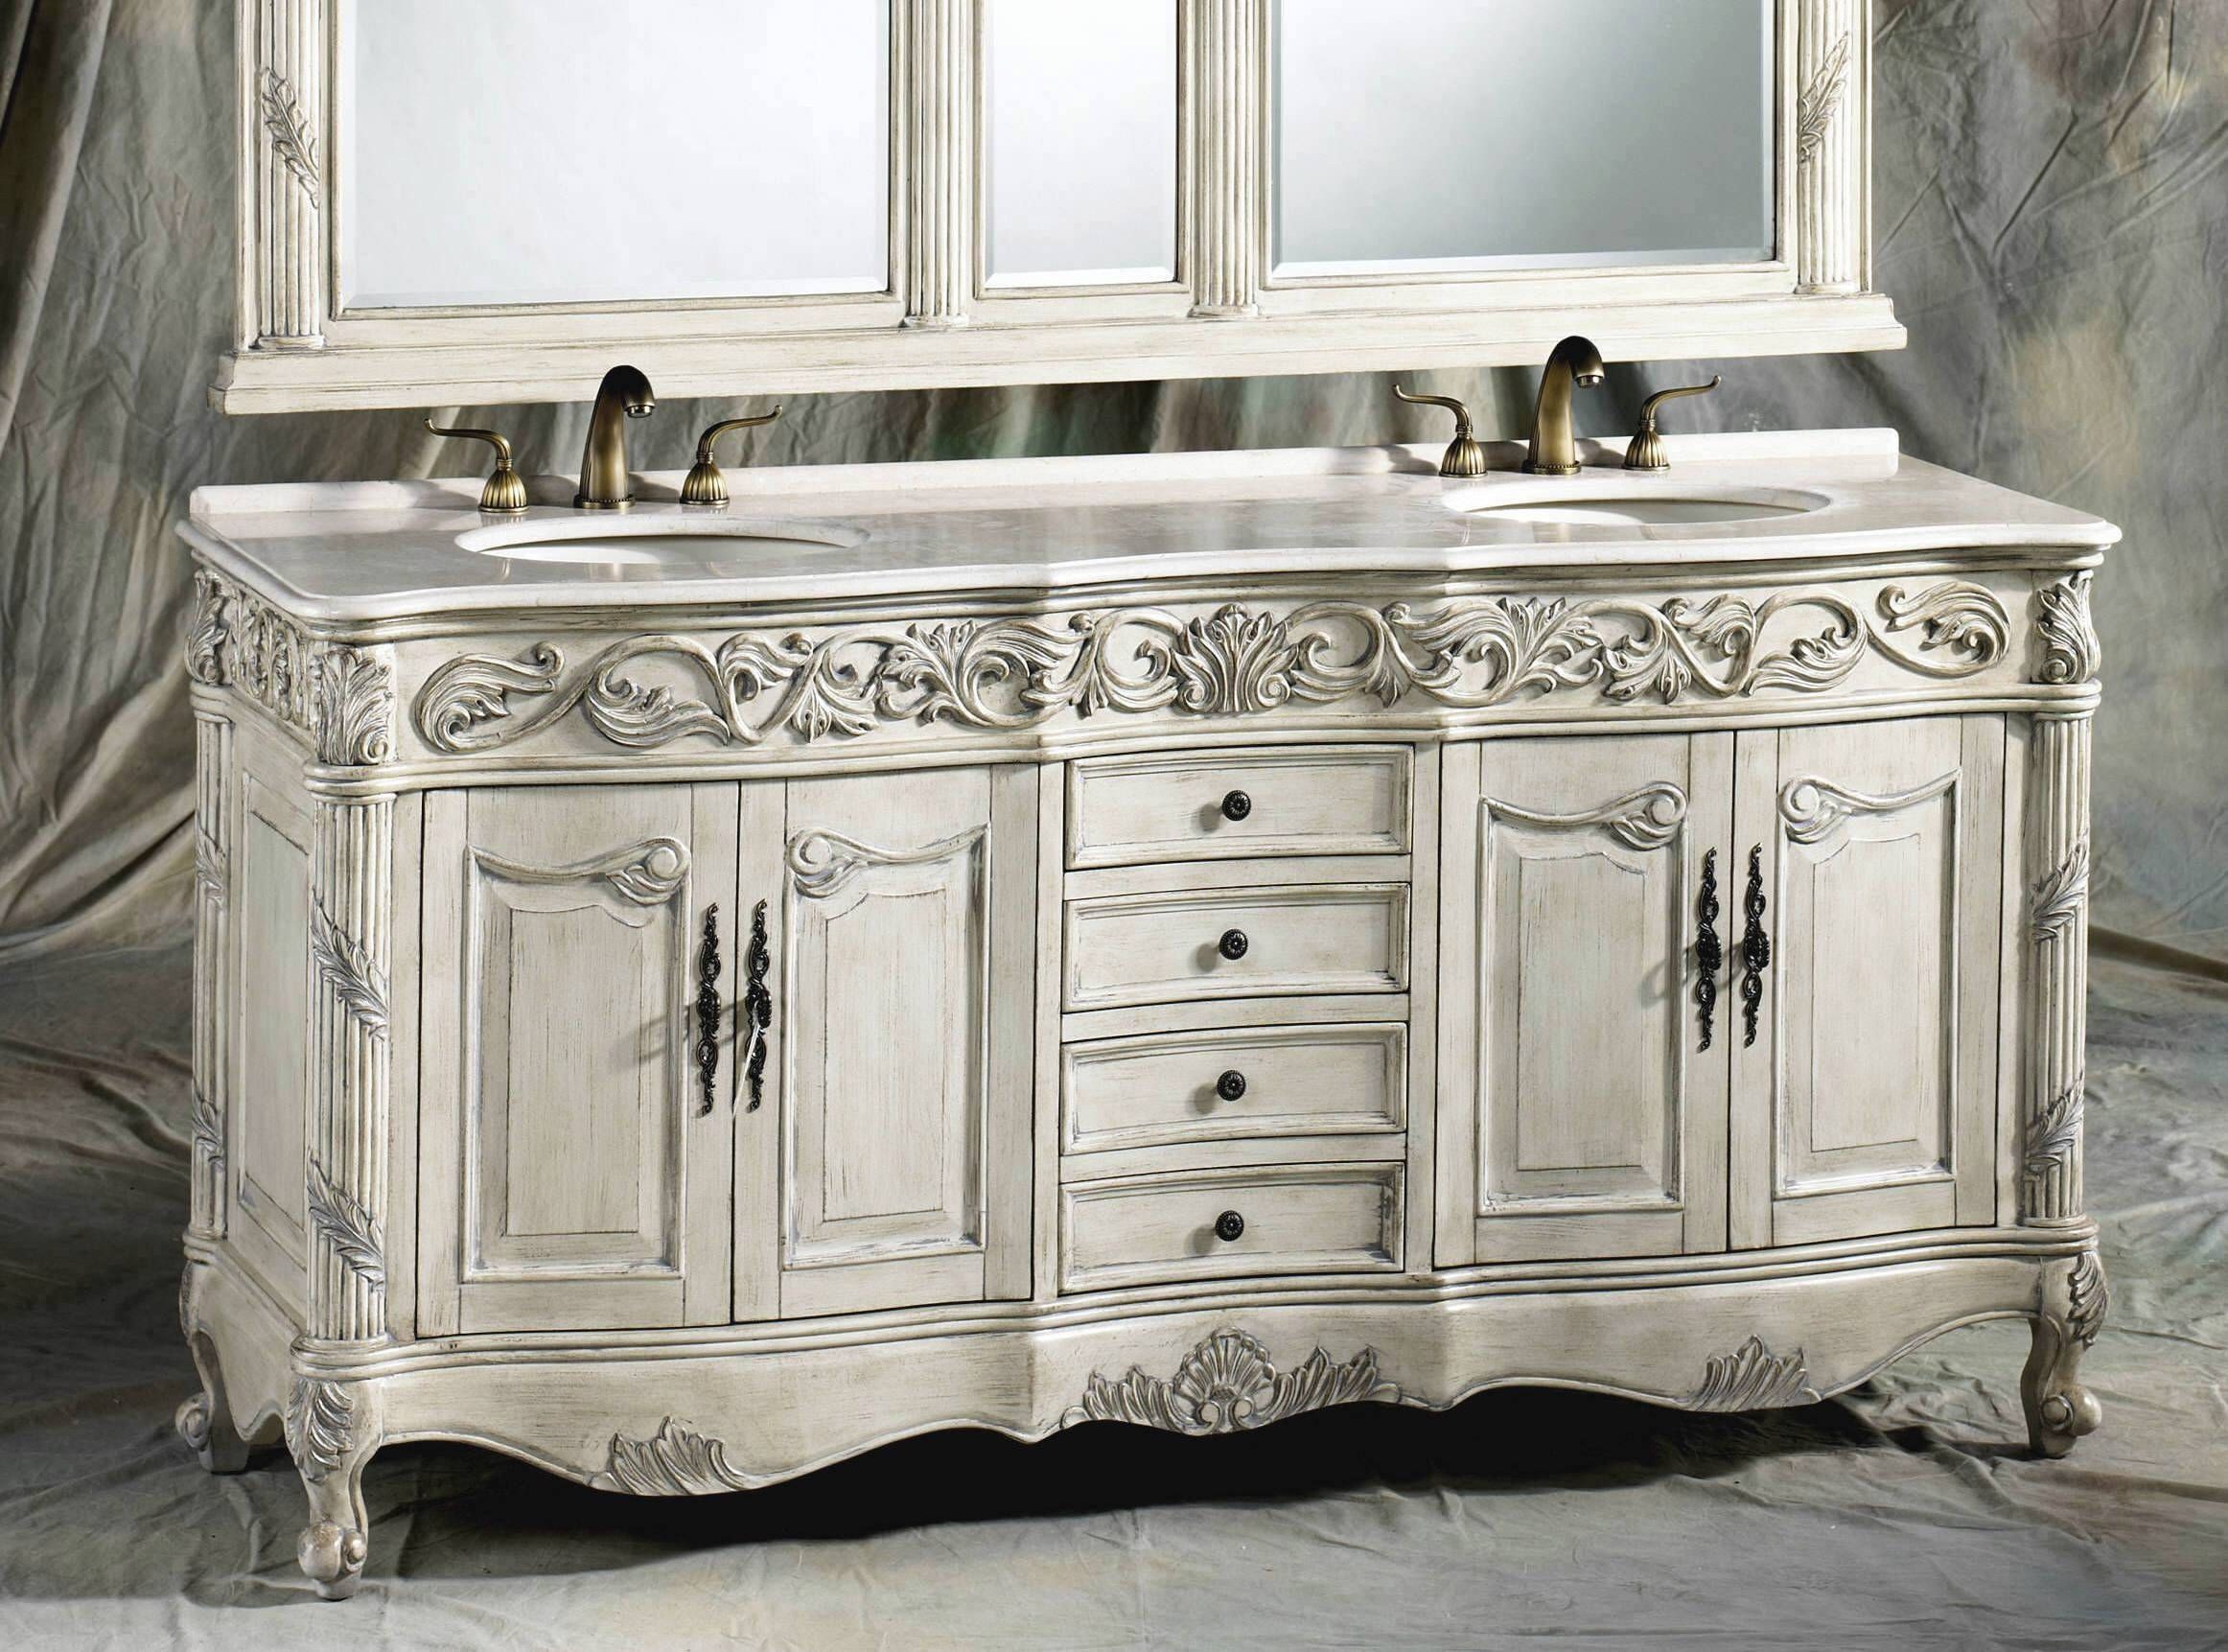 Antique White Wooden Chest Vanity With Matching Double Wall Mirrors And Ferrari Traditional Bathroom Vanity Unique Bathroom Vanity Double Sink Bathroom Vanity